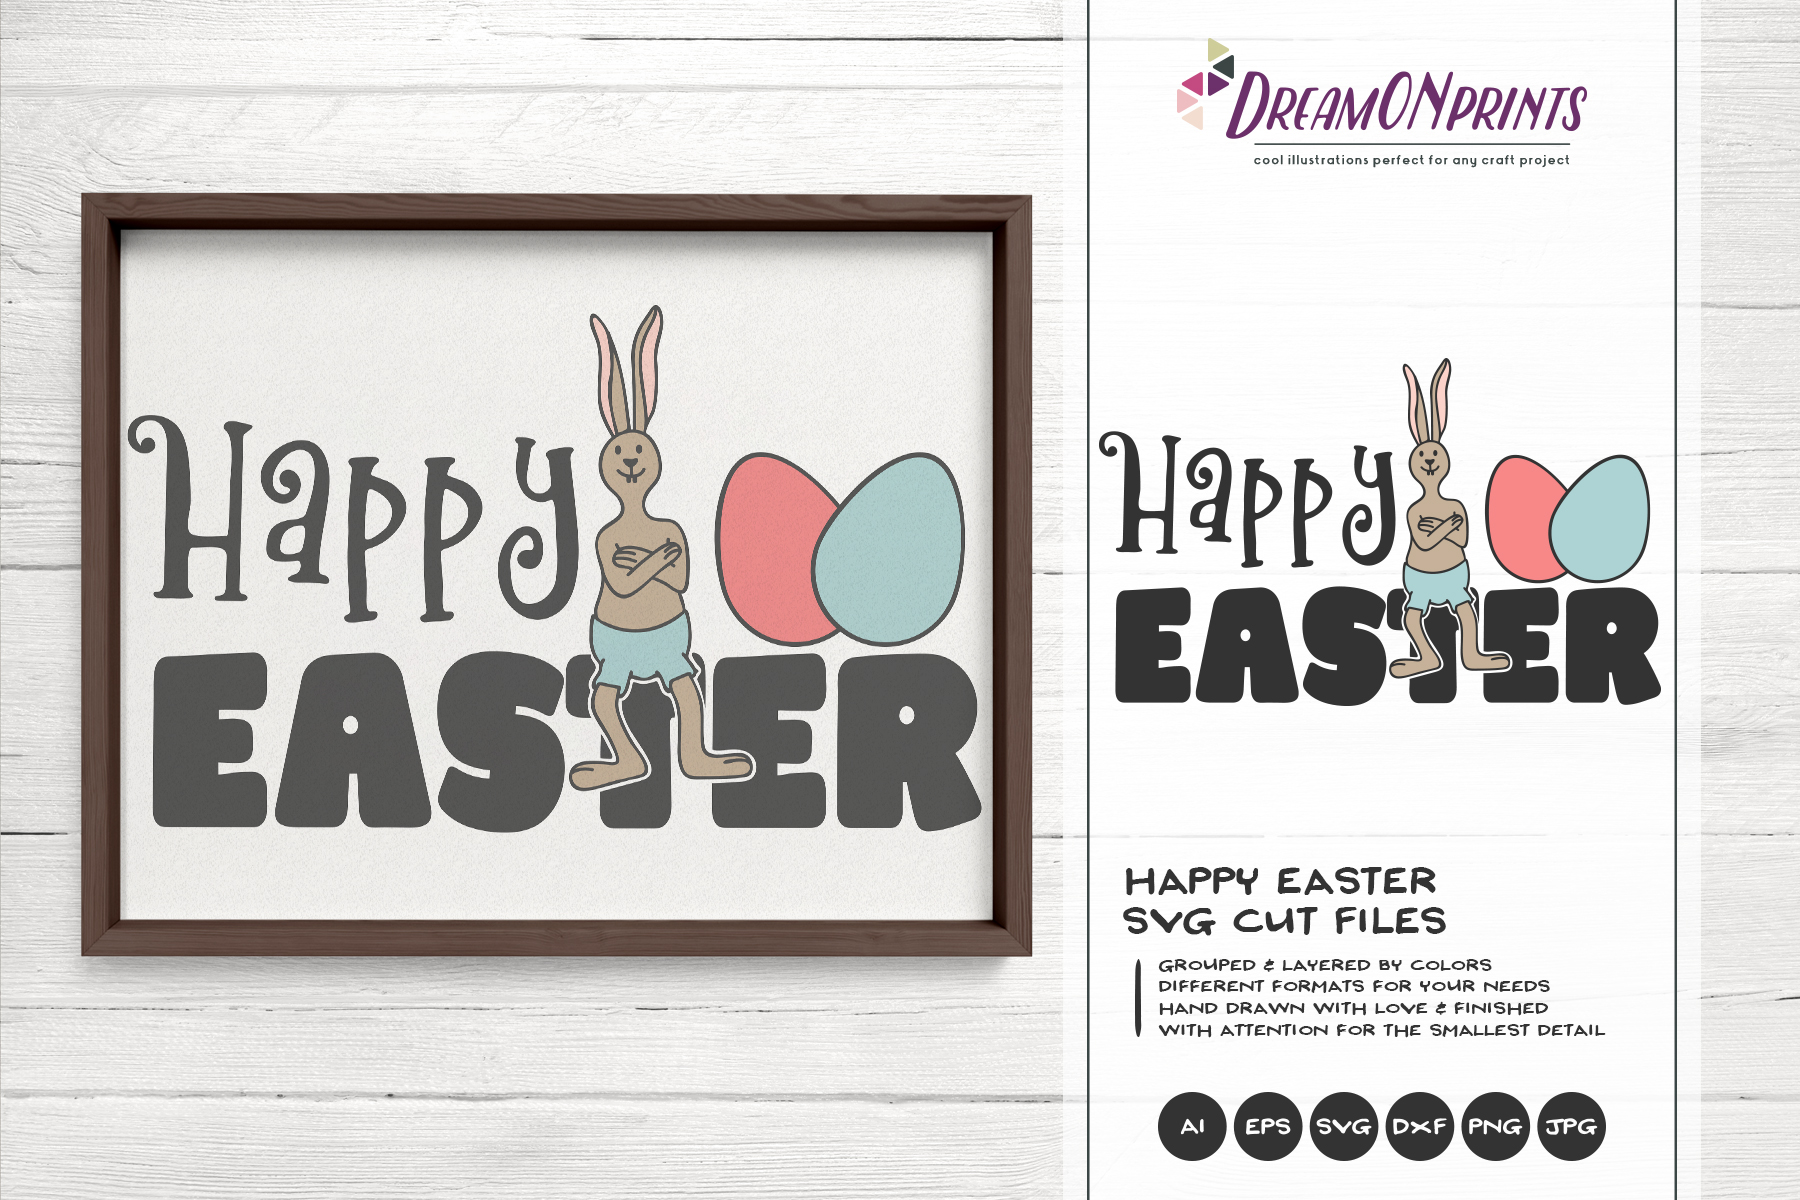 Happy Easter SVG - Easter Bunny SVG example image 1